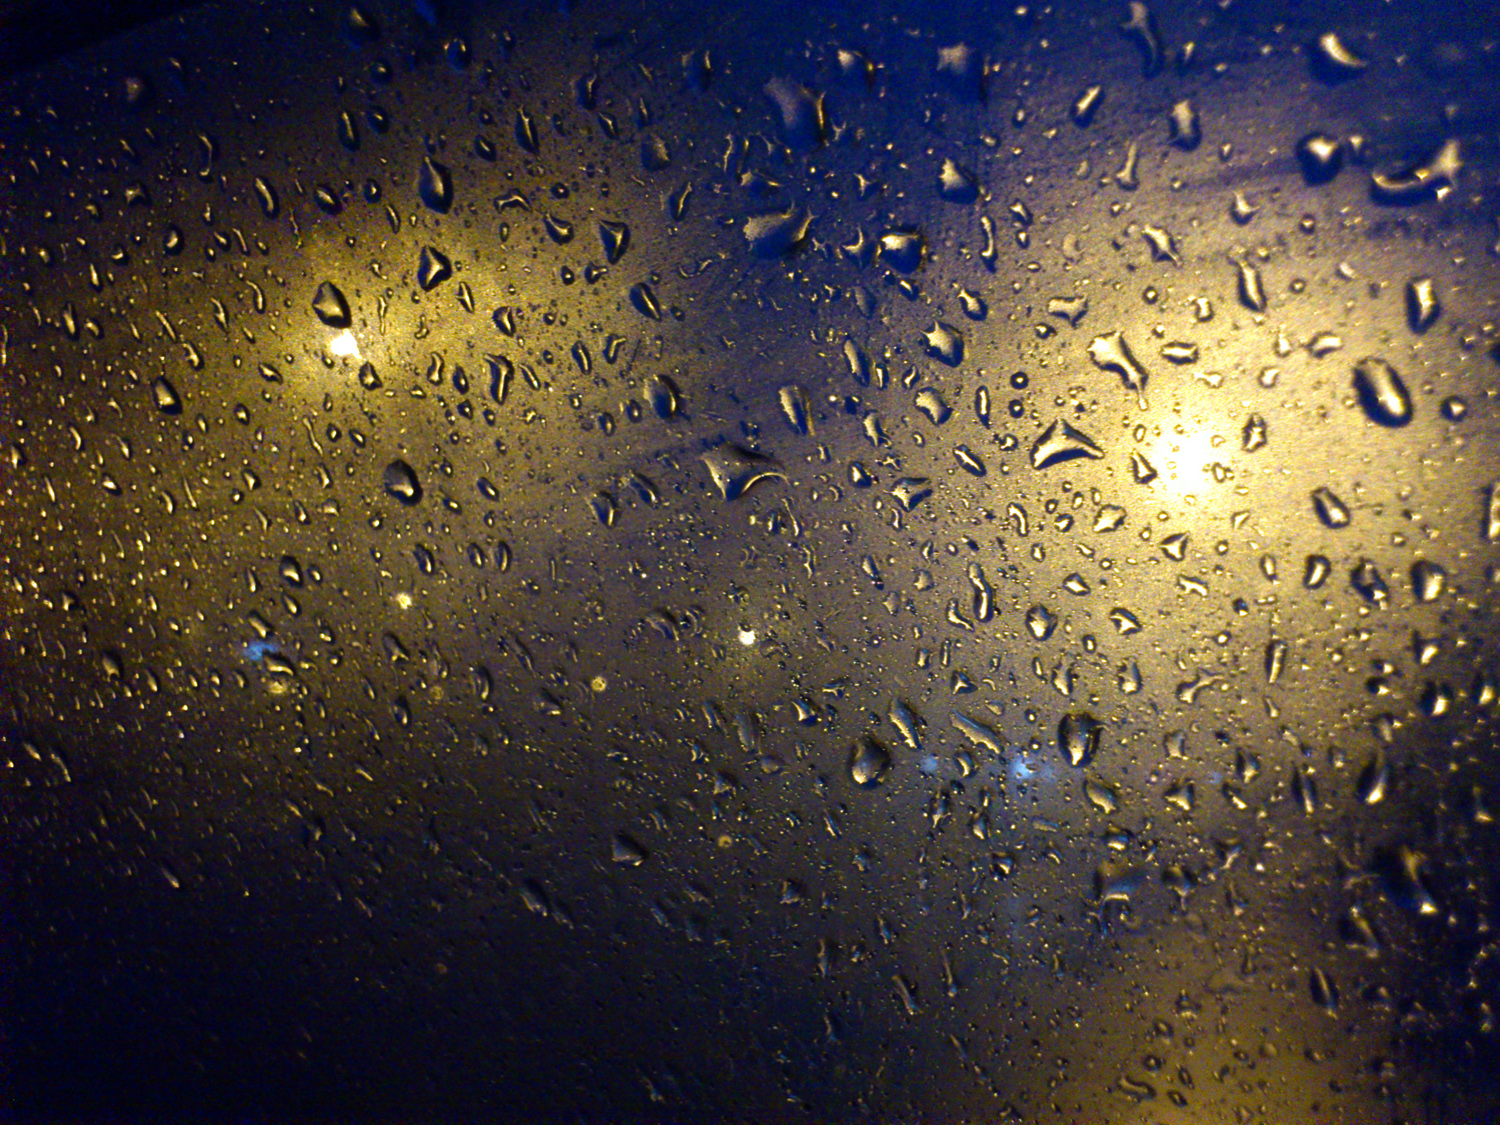 Joel Bramley Photography: Rain droplets on windows